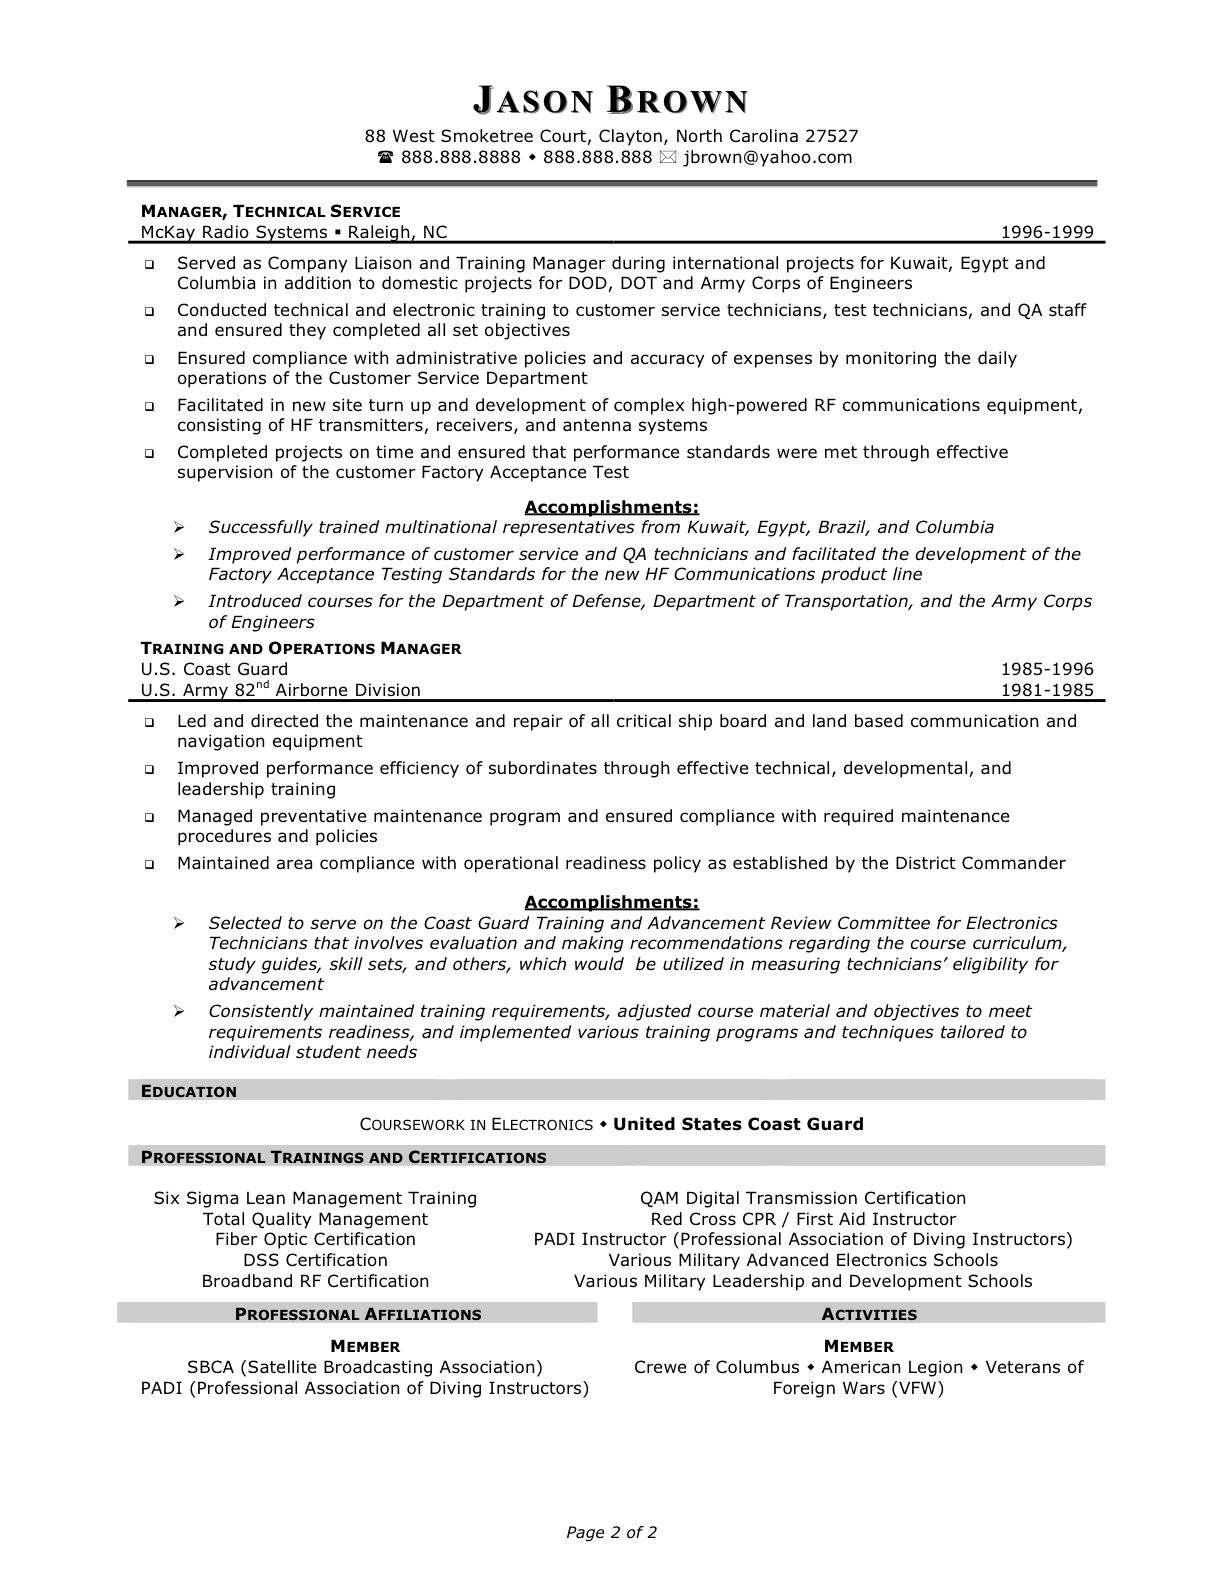 Resume Objective Customer Service Enterprise Management Trainee Program Resume  Httpwww